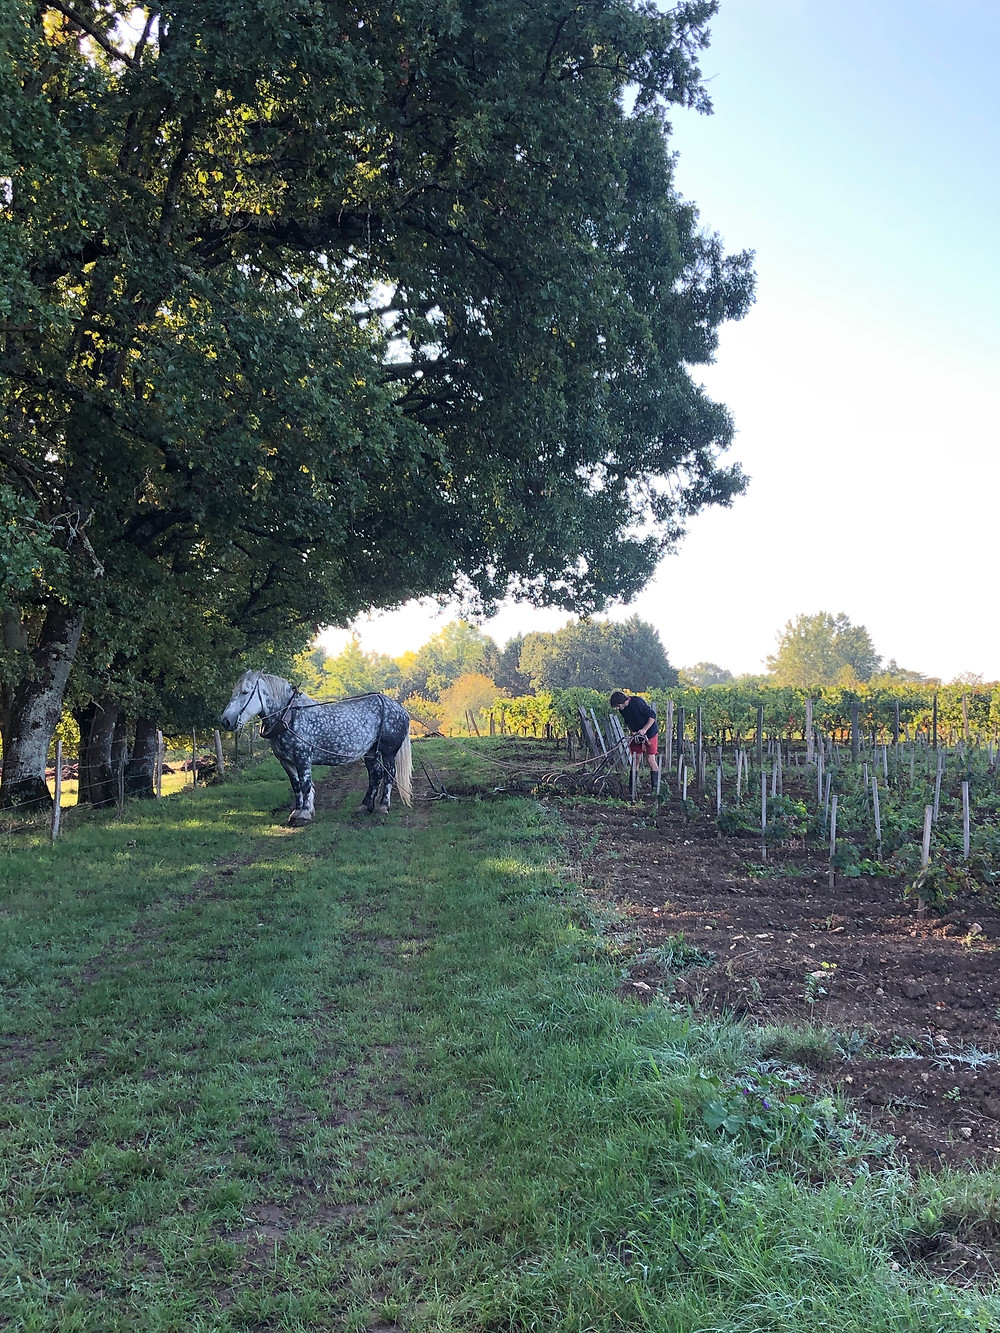 horse ploughing in Bordeaux in a biodynamic vineyard during a visit to Chateau Le Puy